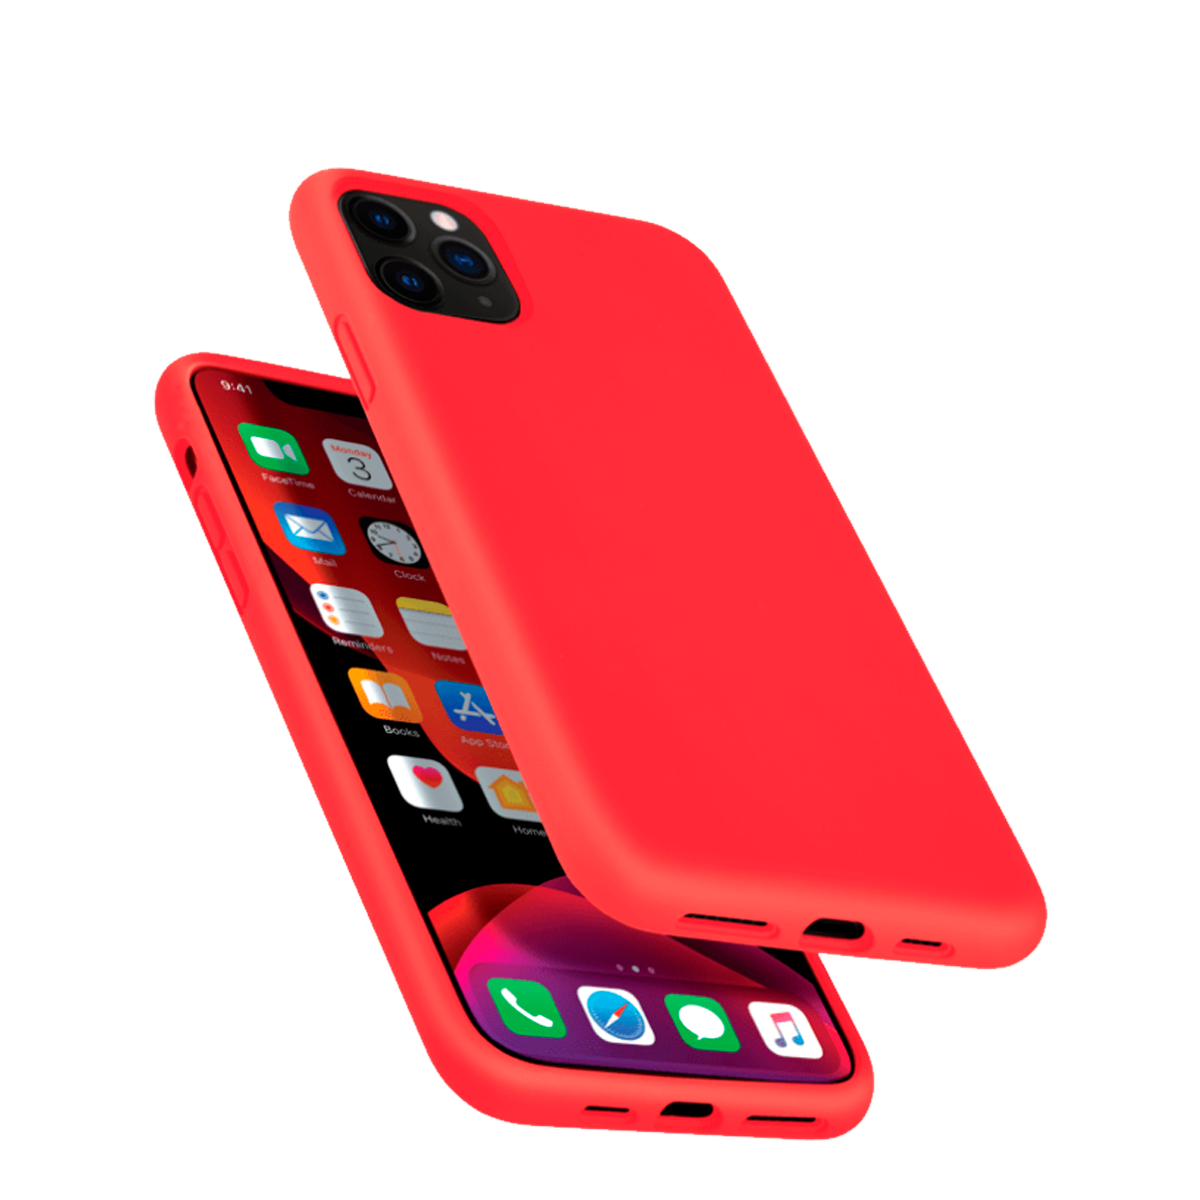 Capa de Smartphone The Kase Anti-Shock Silicone Apple iPhone 11 Pro Max Vermelha